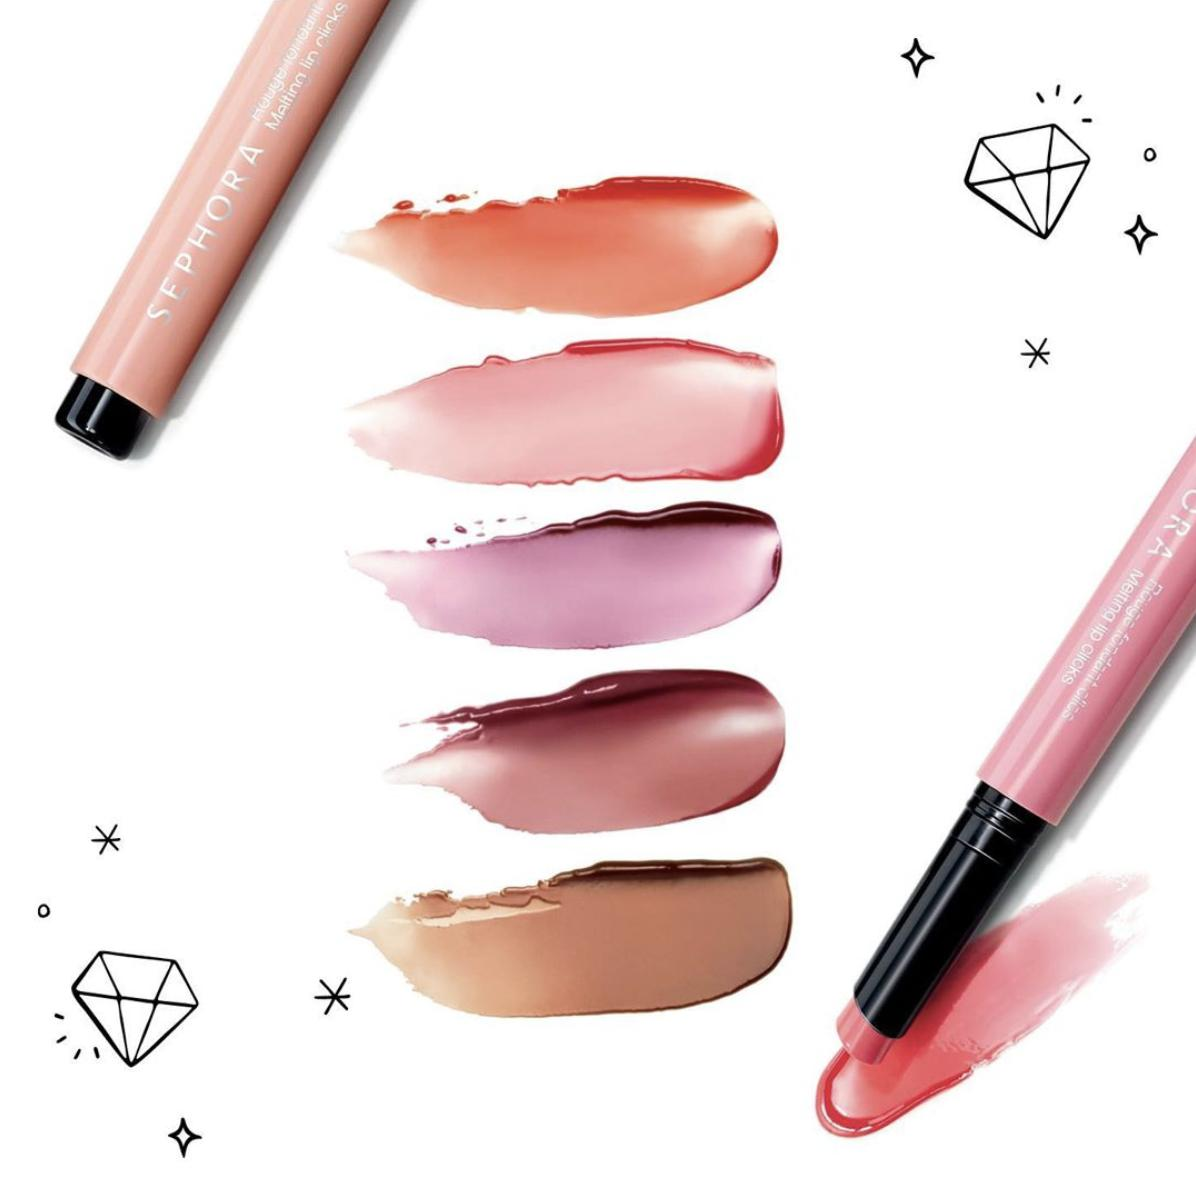 Melting Lip Clicks by Sephora Collection #4